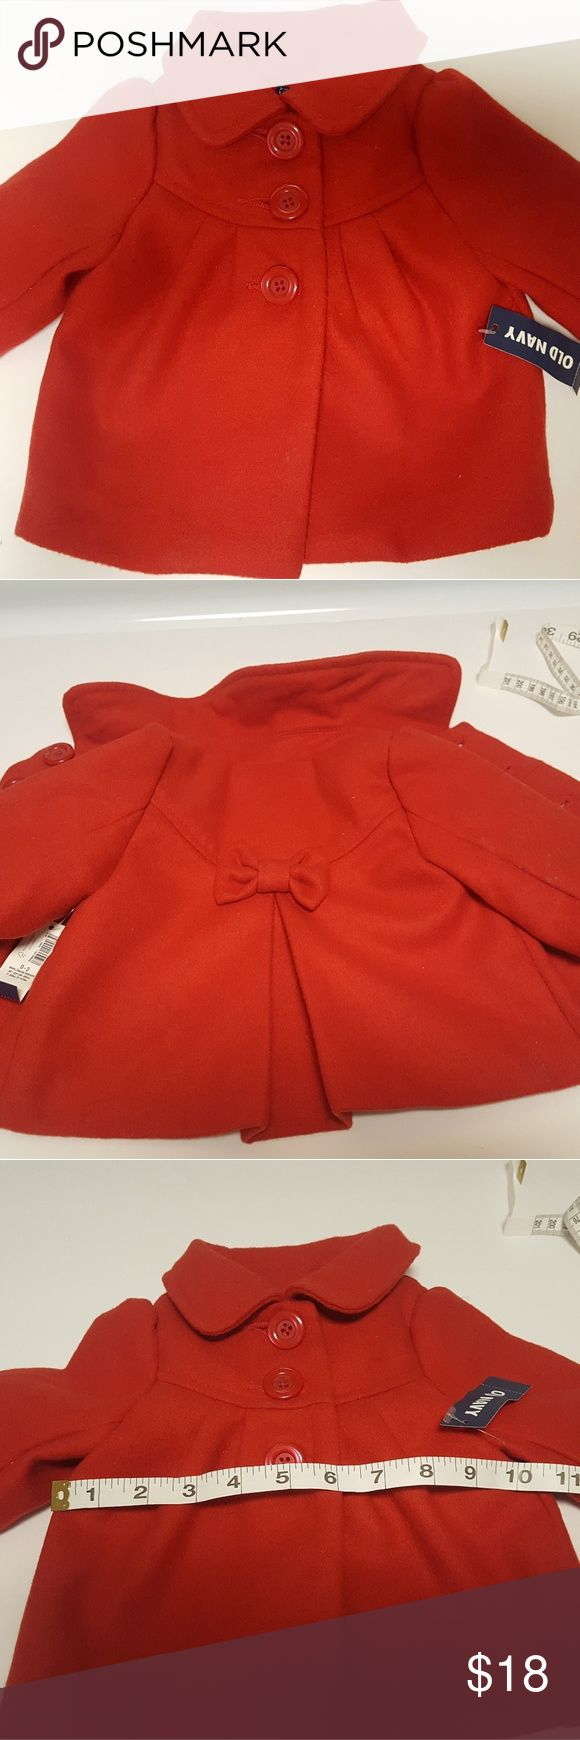 Baby girl Old Navy red peacoat NWT beautiful baby girl peacoat. Old Navy Jackets & Coats Pea Coats